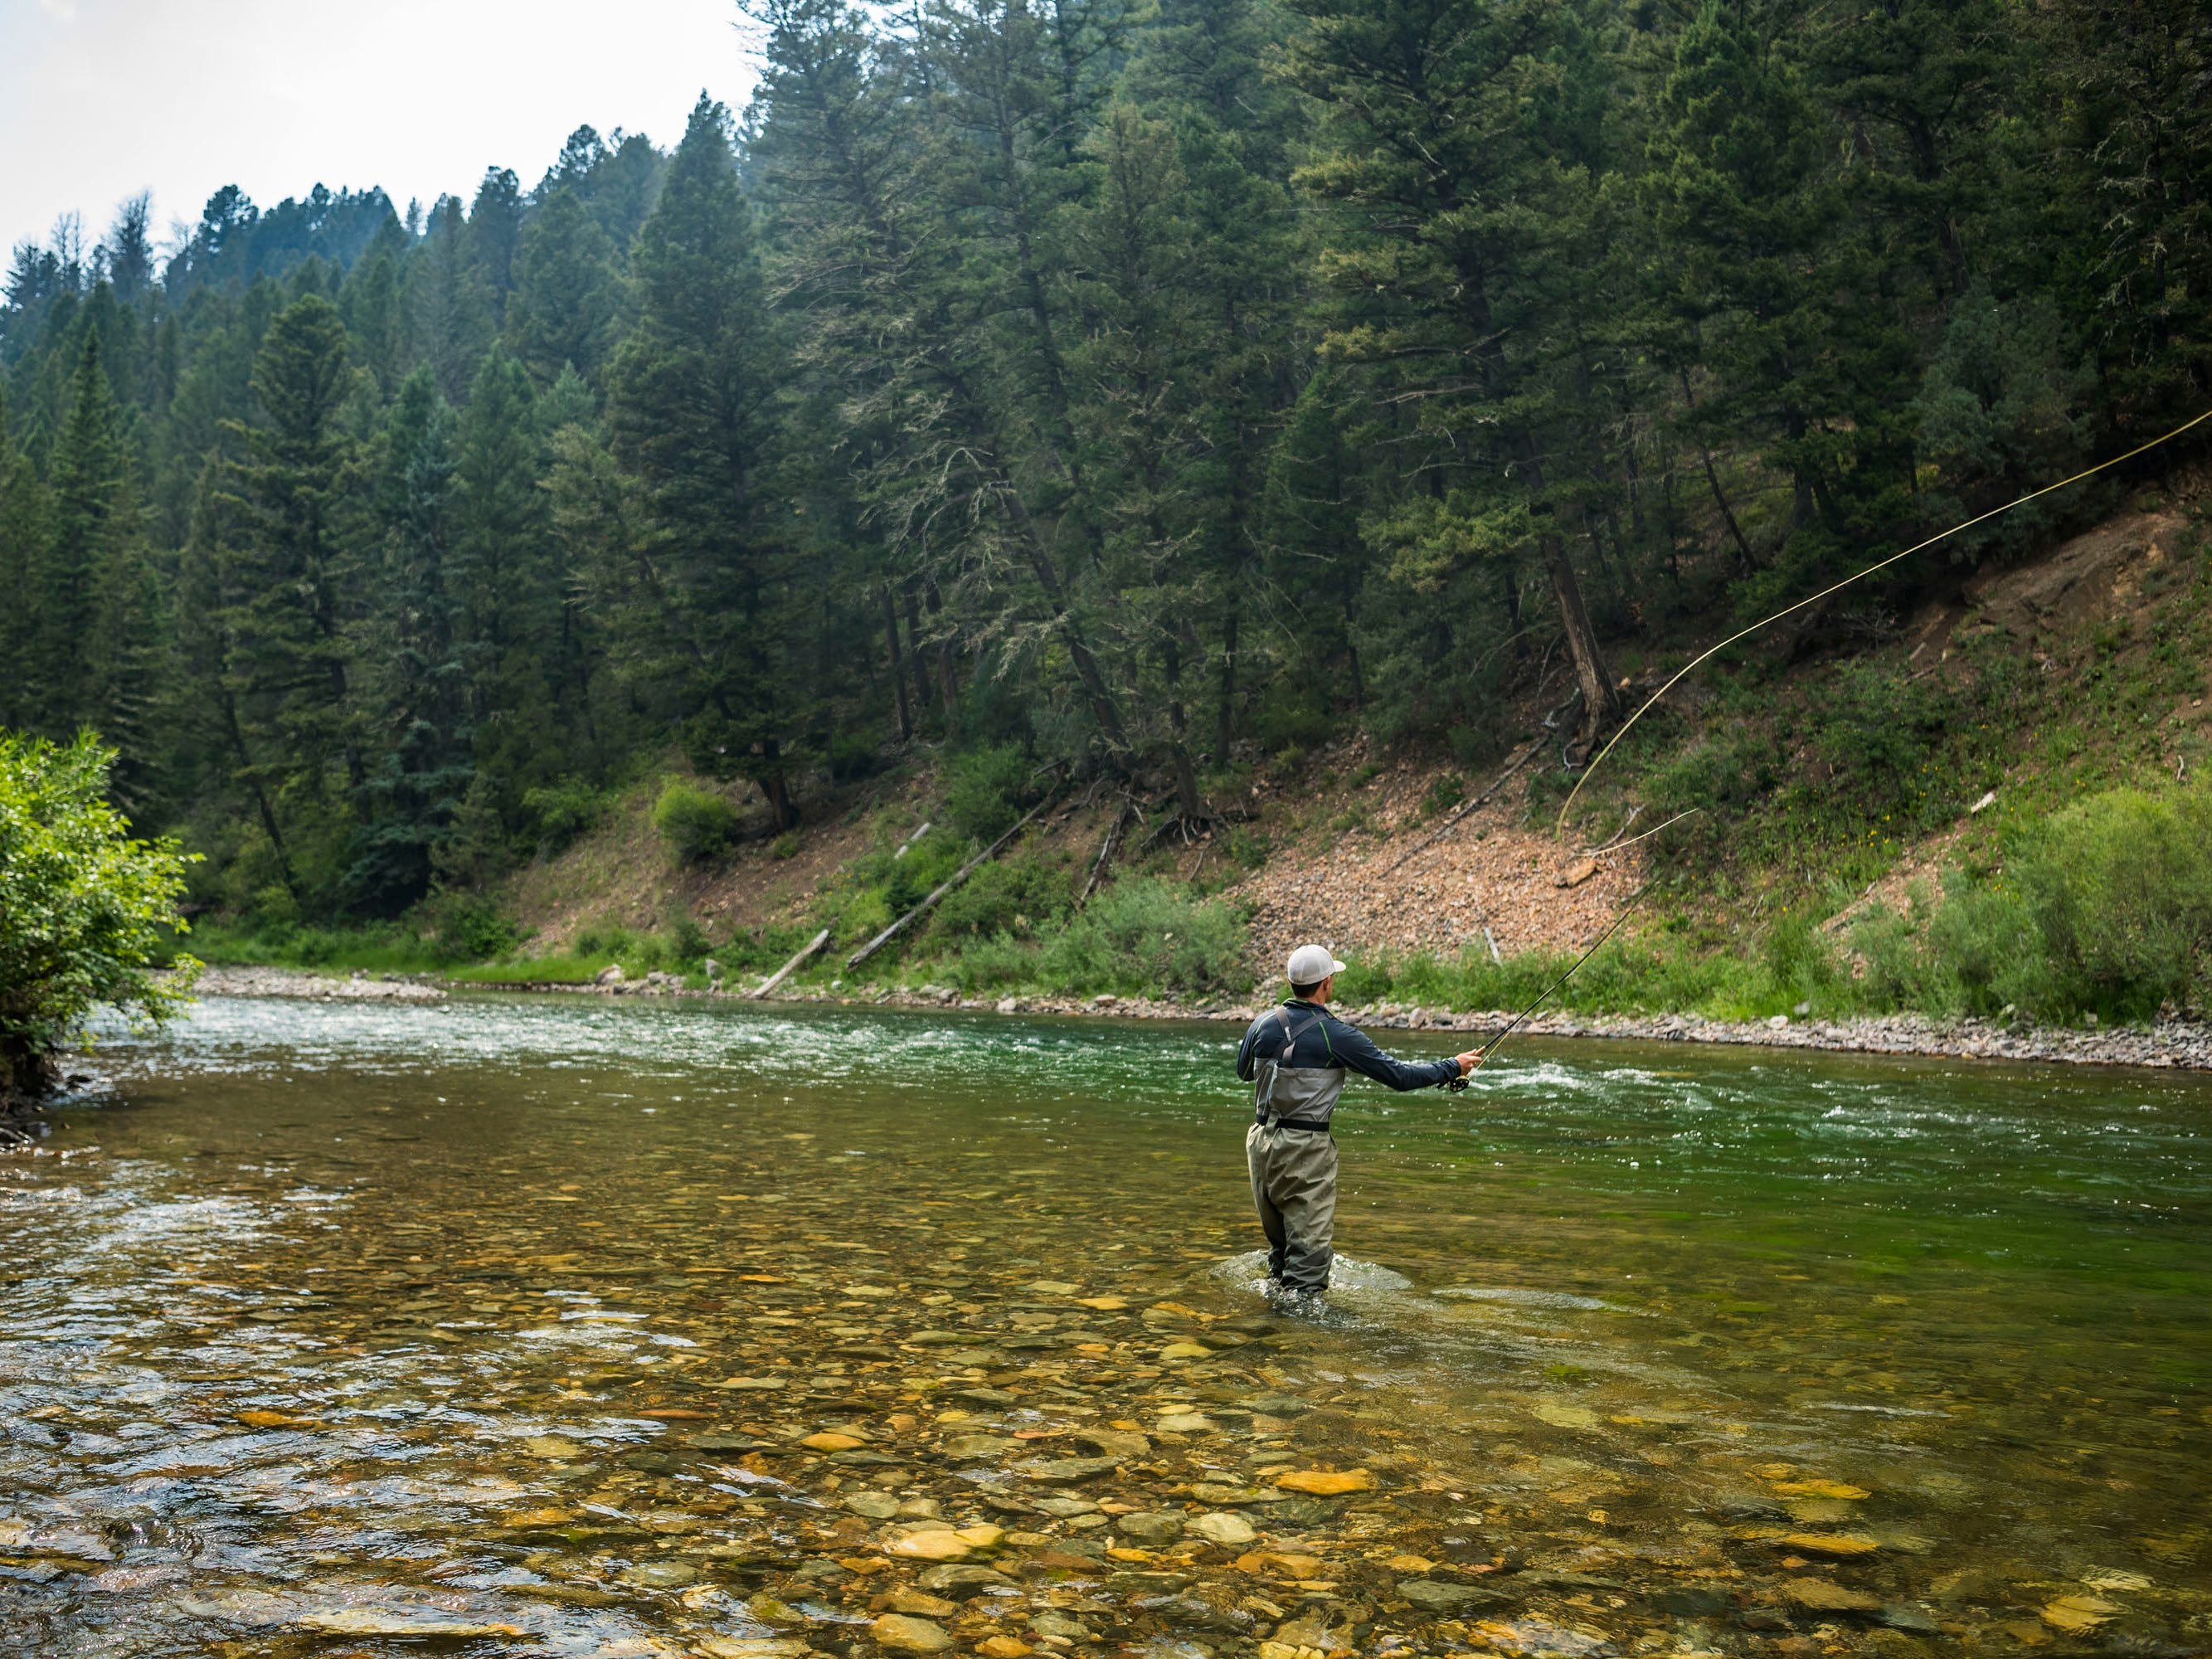 Activities in Montana include fly-fishing on the Gallatin River, a contemplative – and, it turns out, delightful – way to chill out.